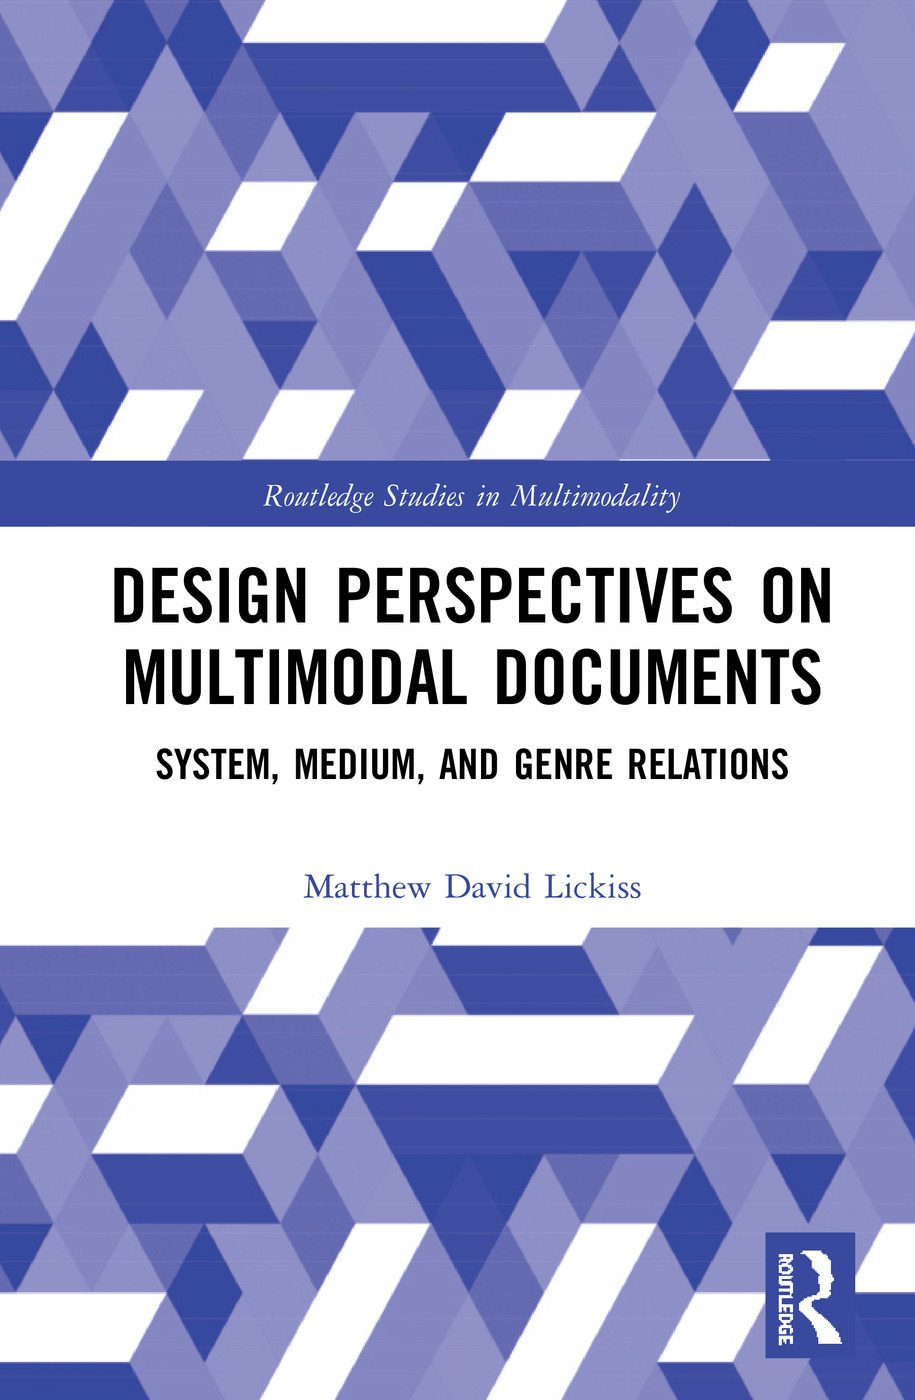 Design Perspectives on Multimodal Documents: System, Medium, and Genre Relations book cover